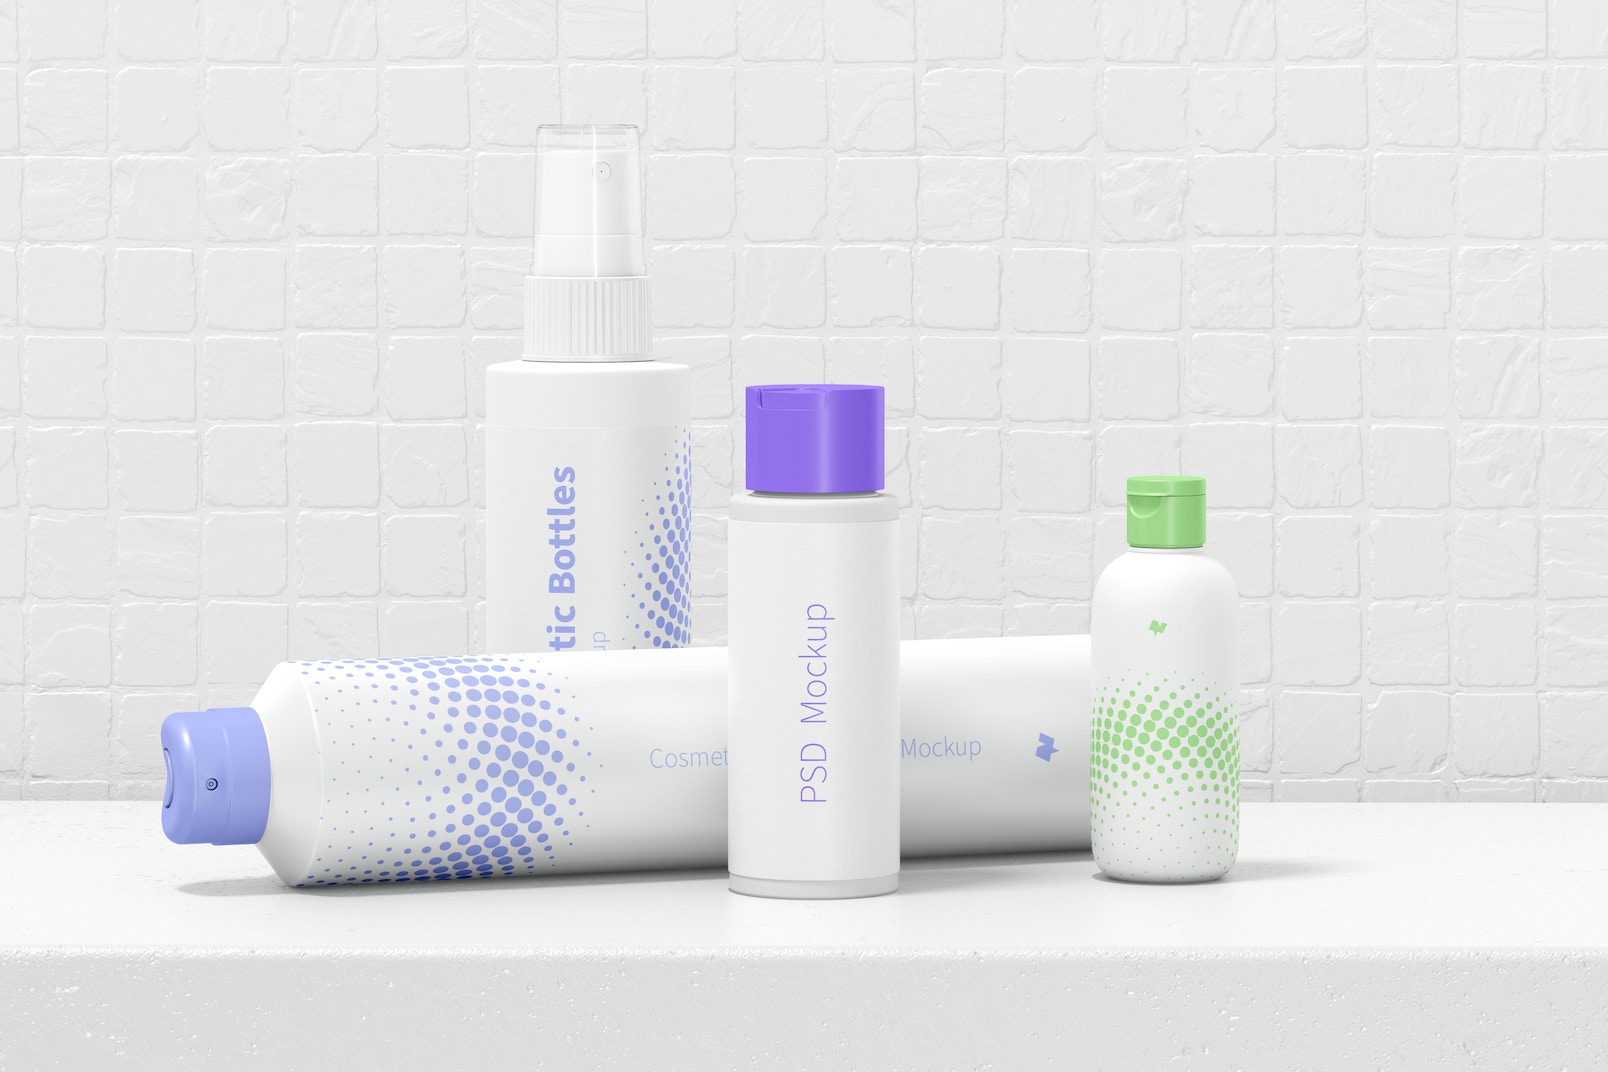 Cosmetic Bottles Scene Mockup, Front View